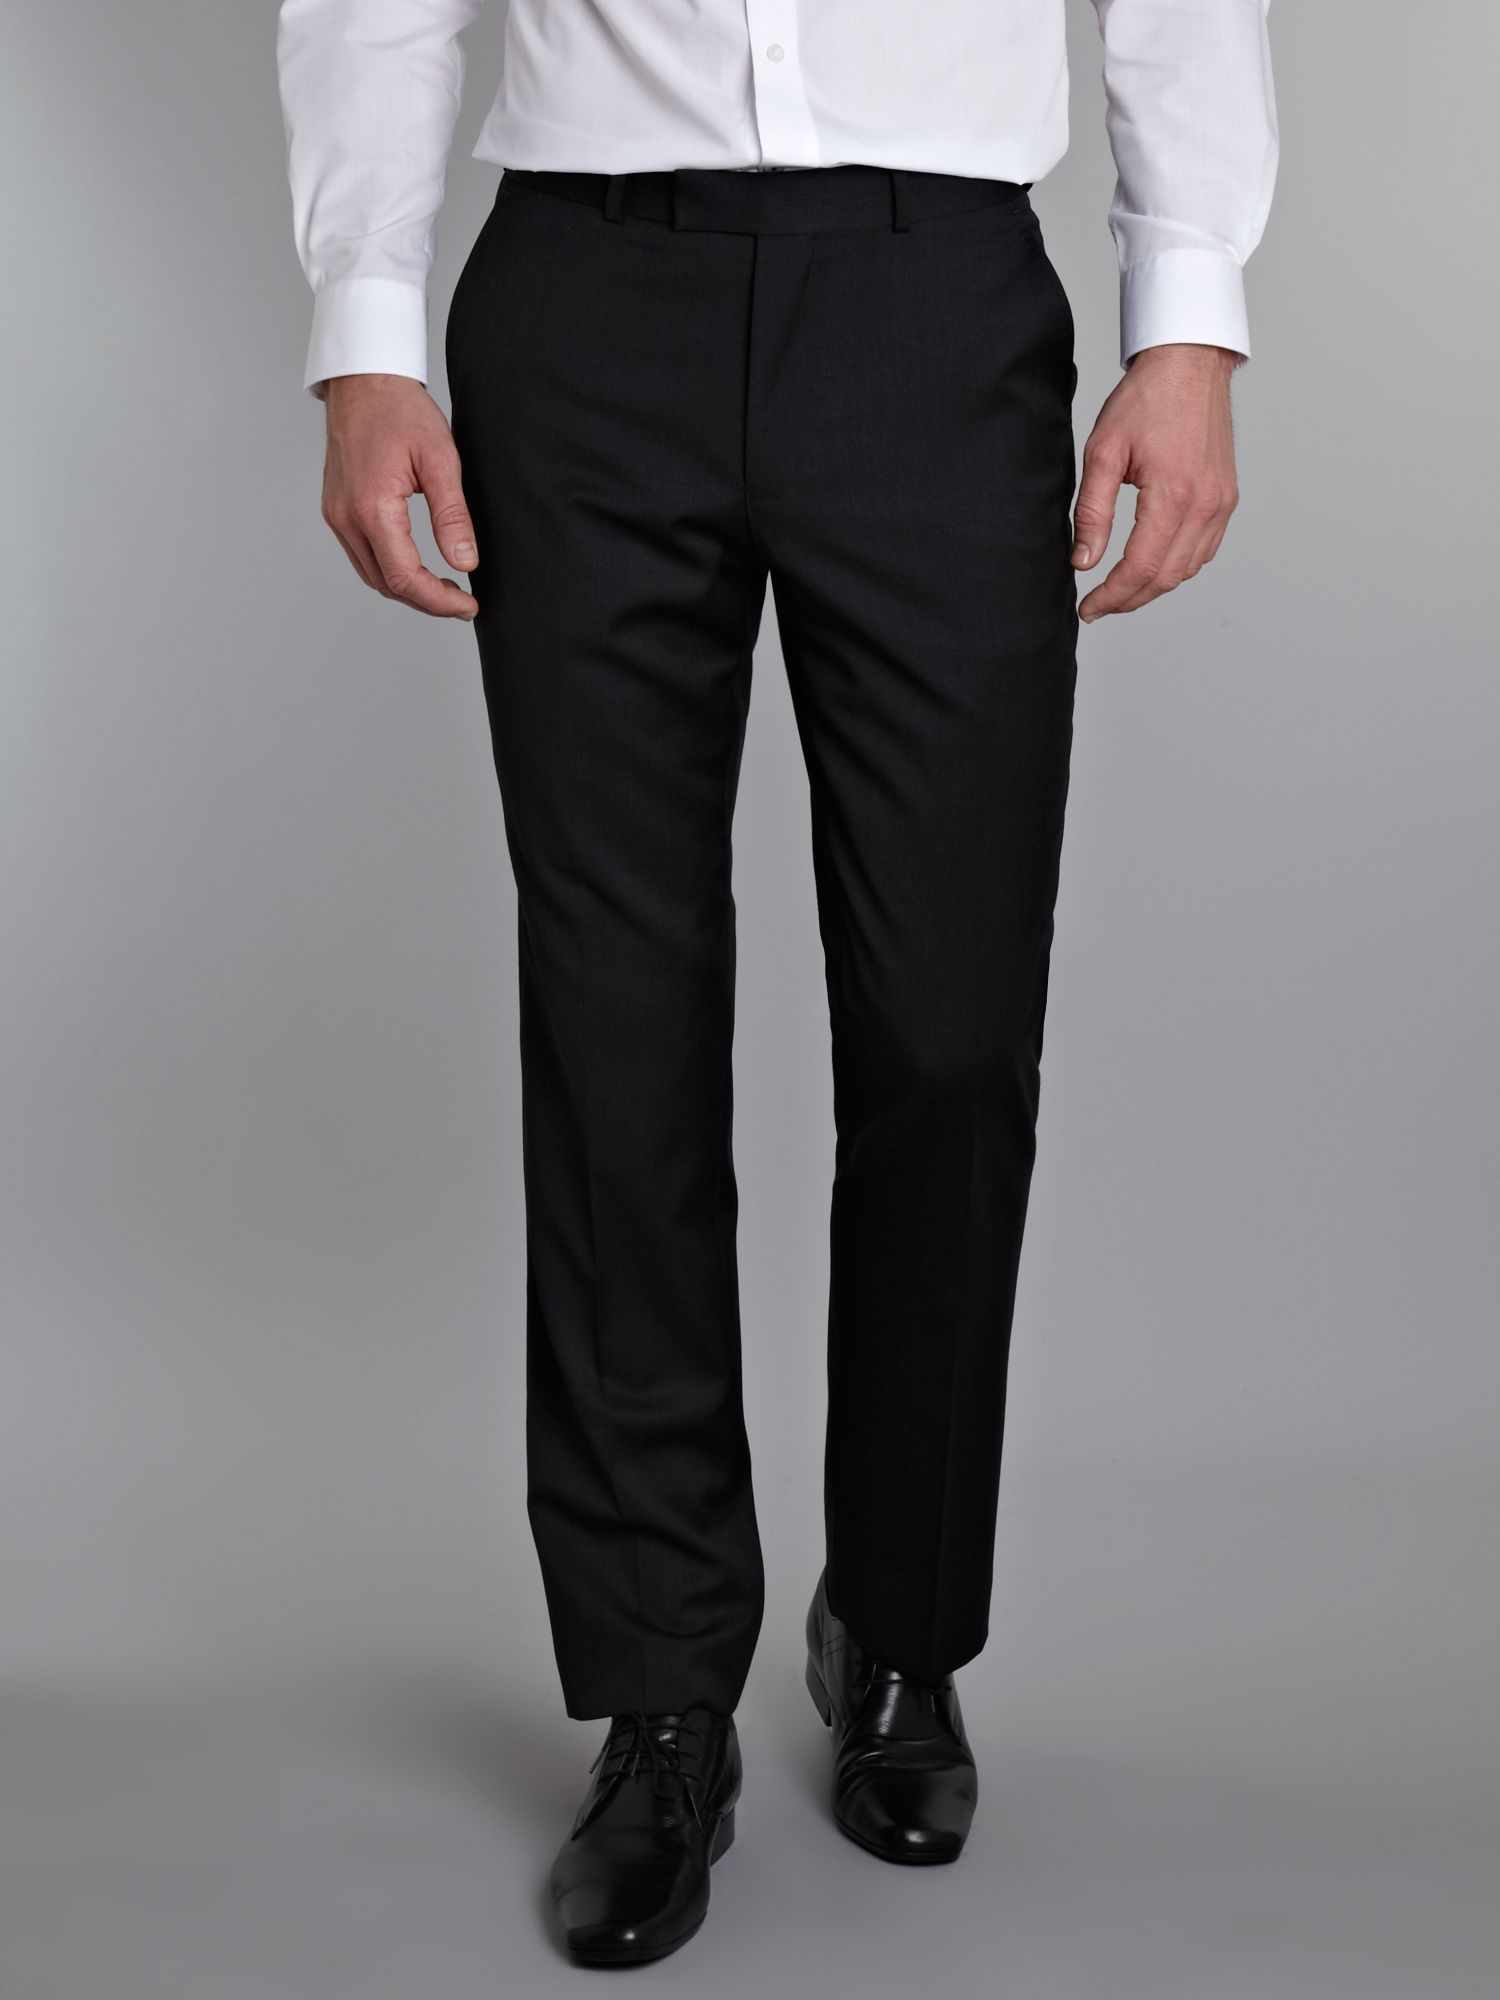 Golden ewe suit trouser